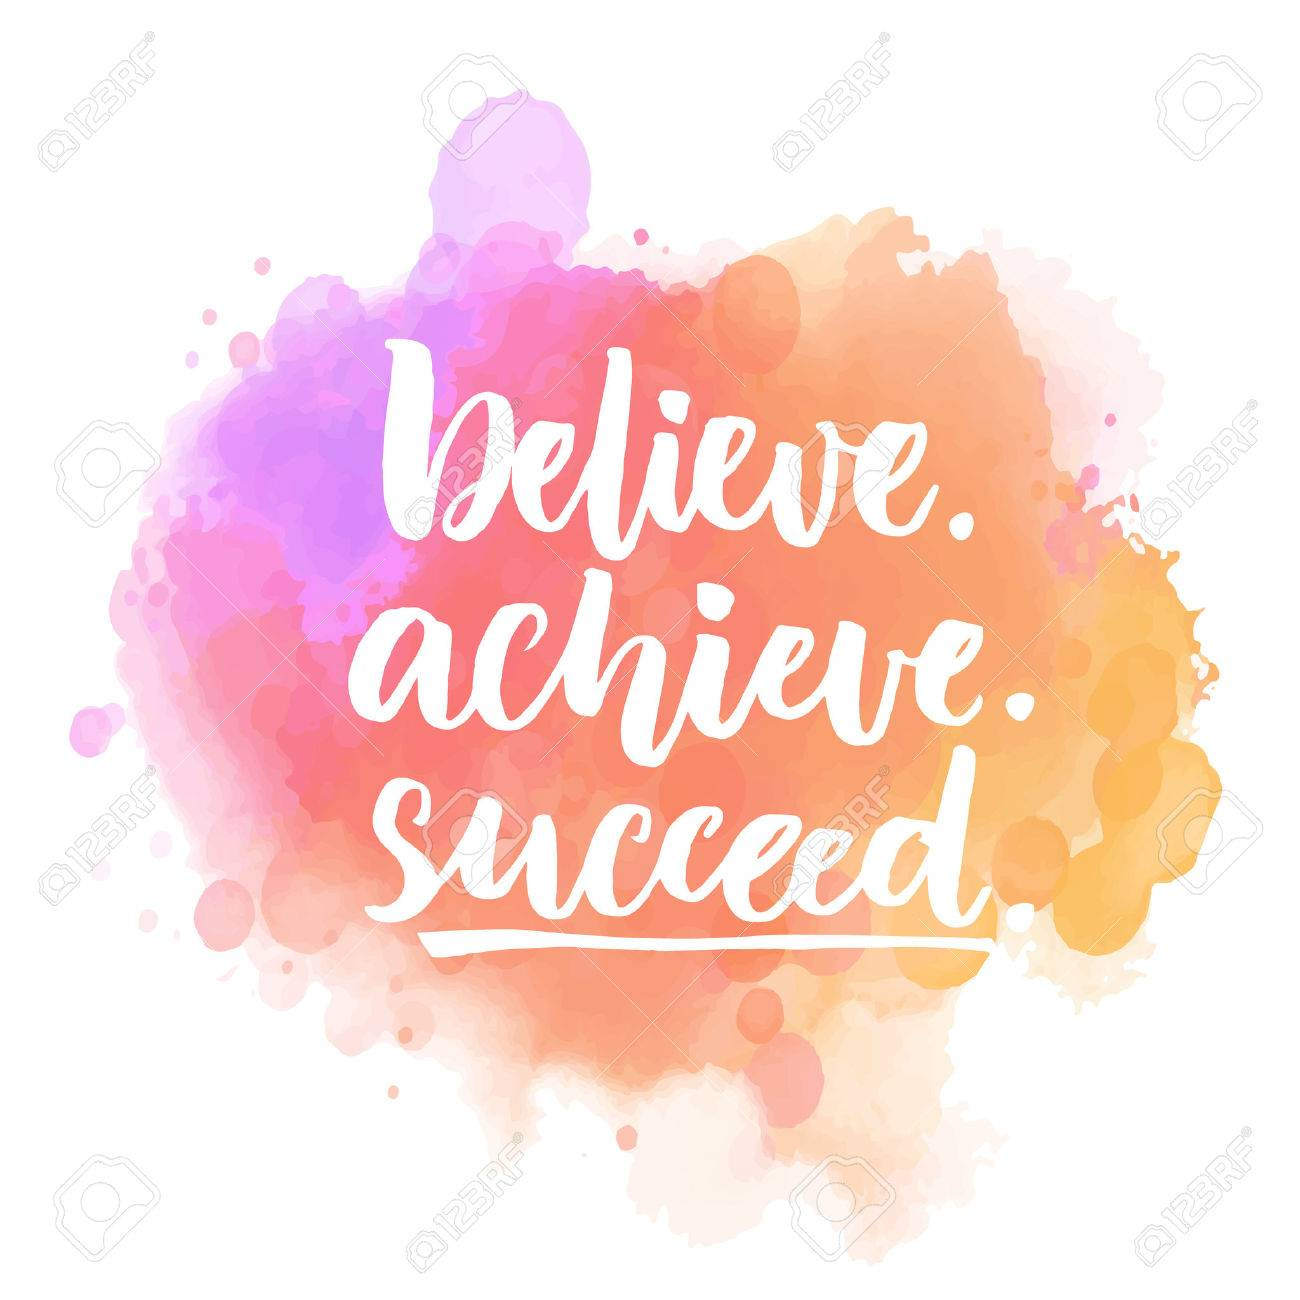 believe achieve succeed motivational quote on purple and pink